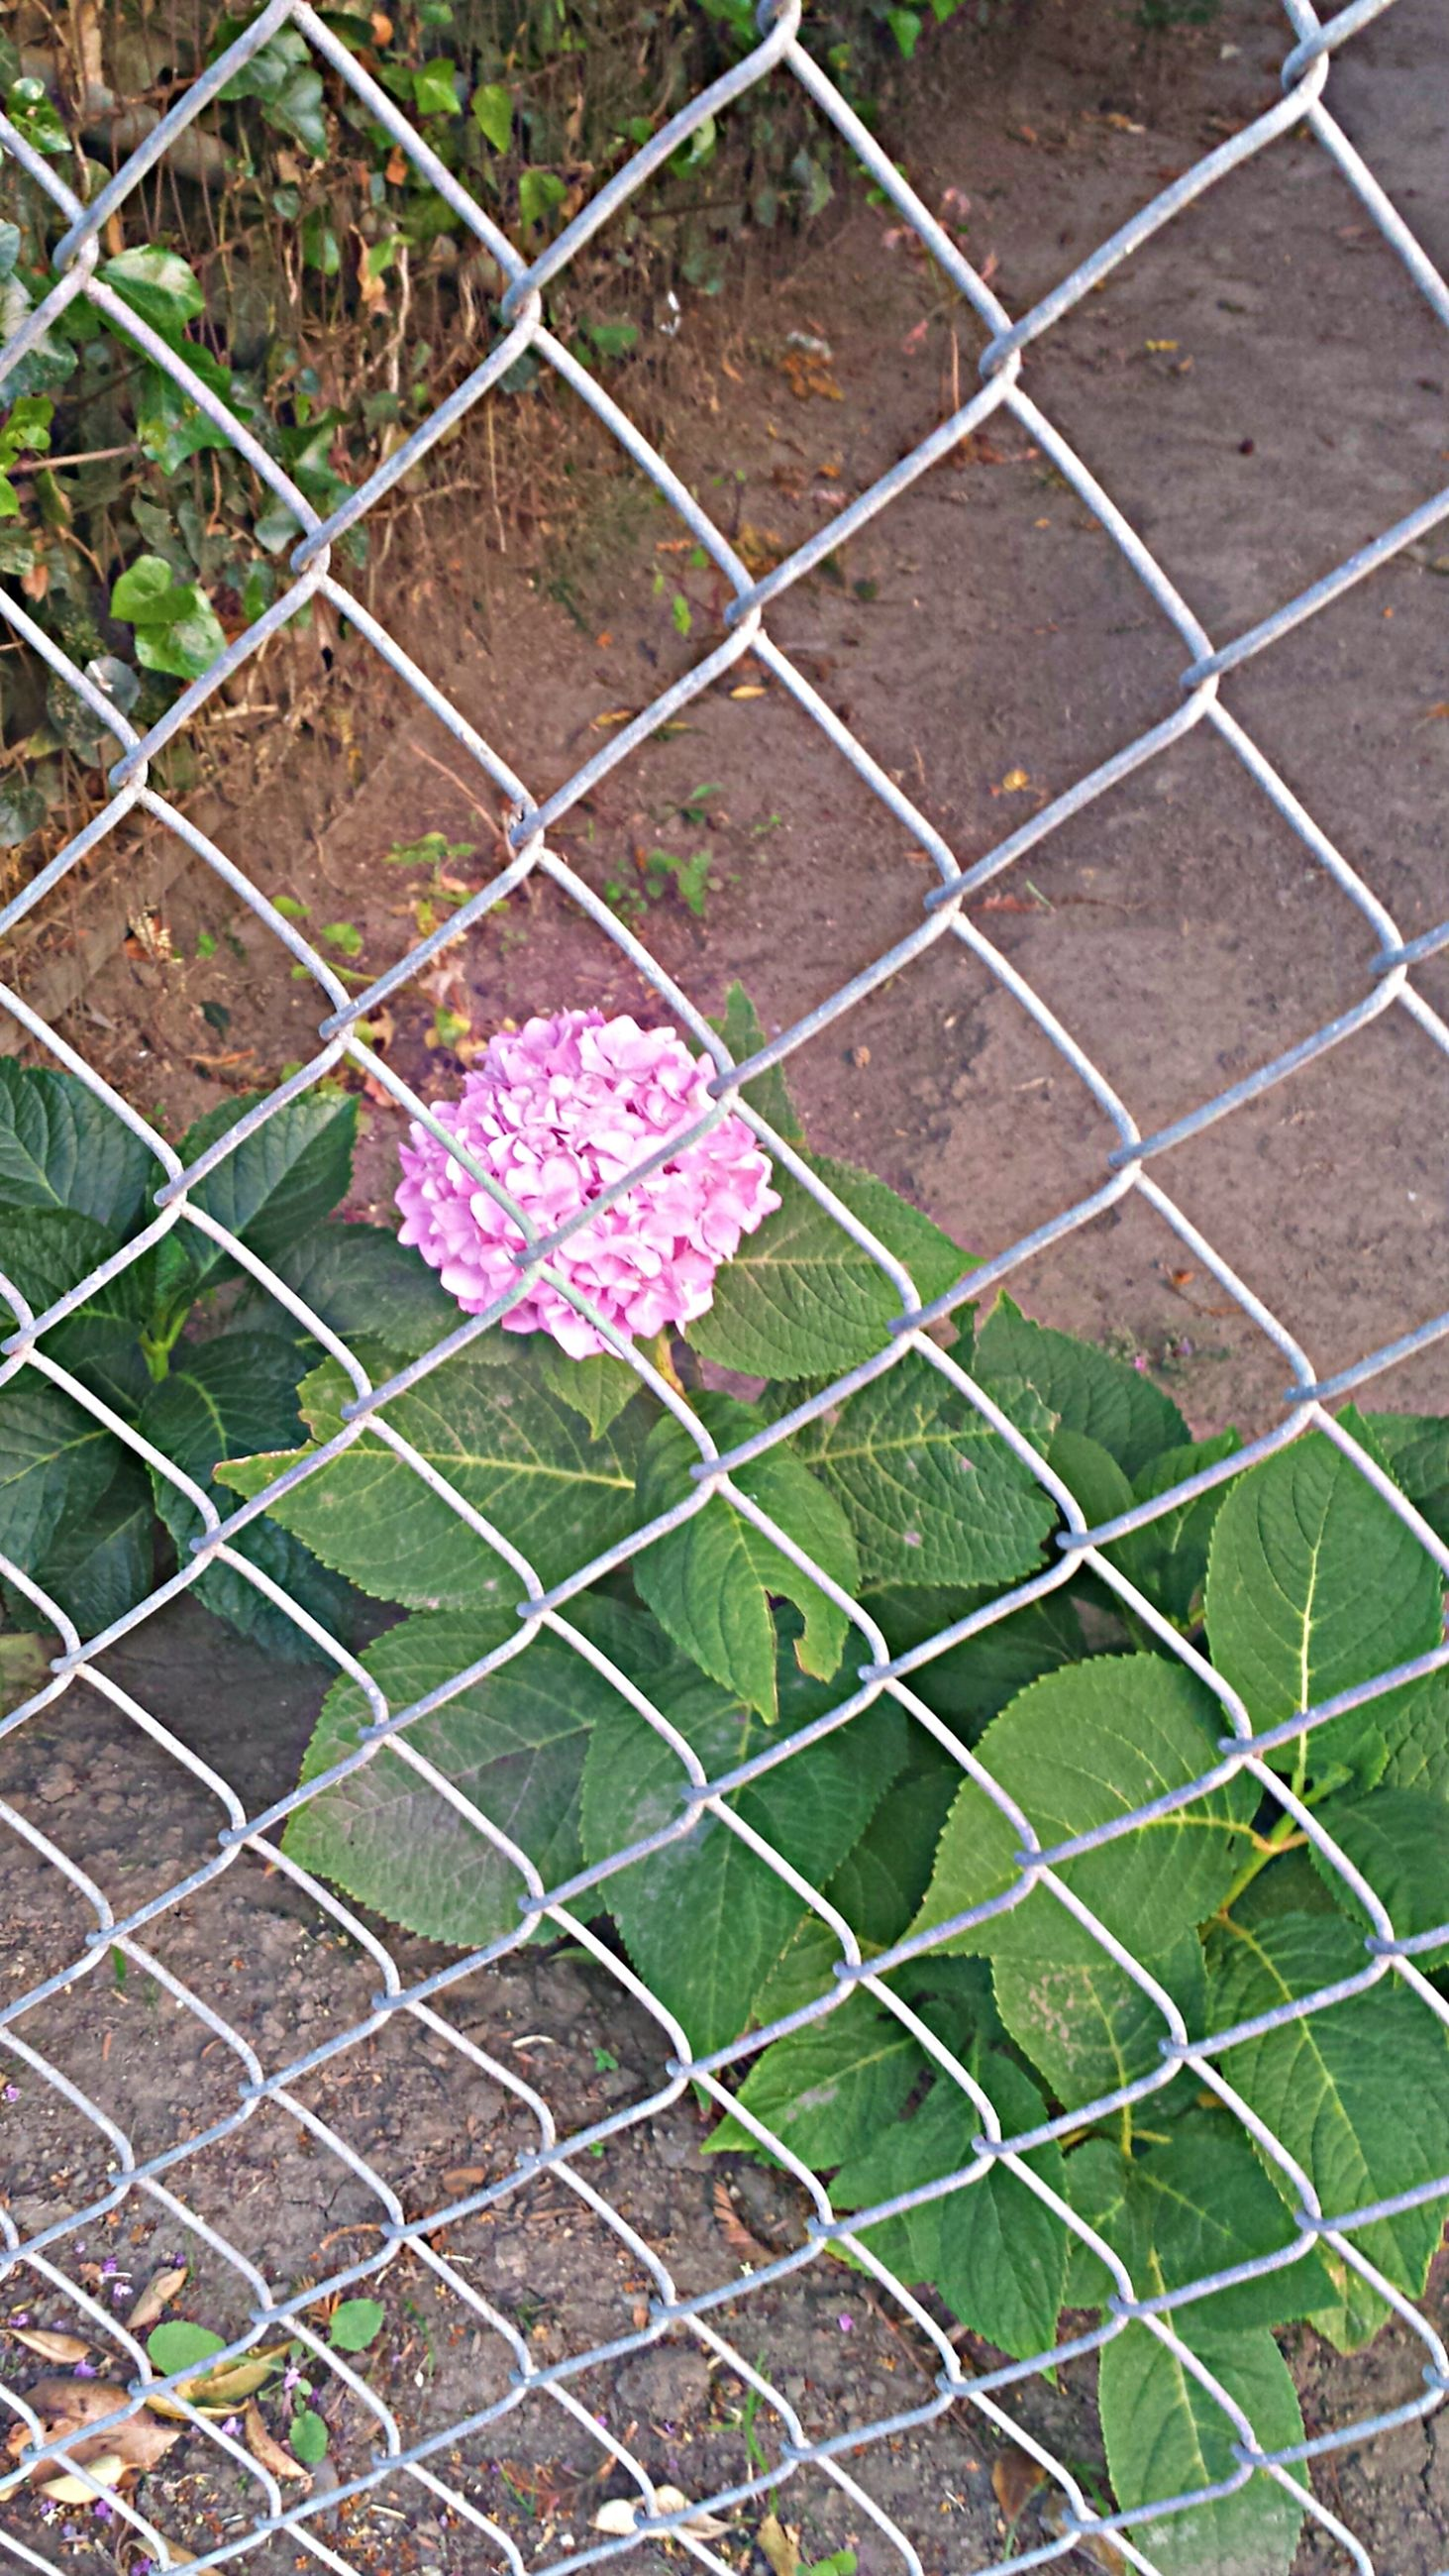 chainlink fence, flower, growth, fence, plant, green color, freshness, fragility, full frame, nature, grass, backgrounds, beauty in nature, high angle view, pattern, protection, outdoors, leaf, day, close-up